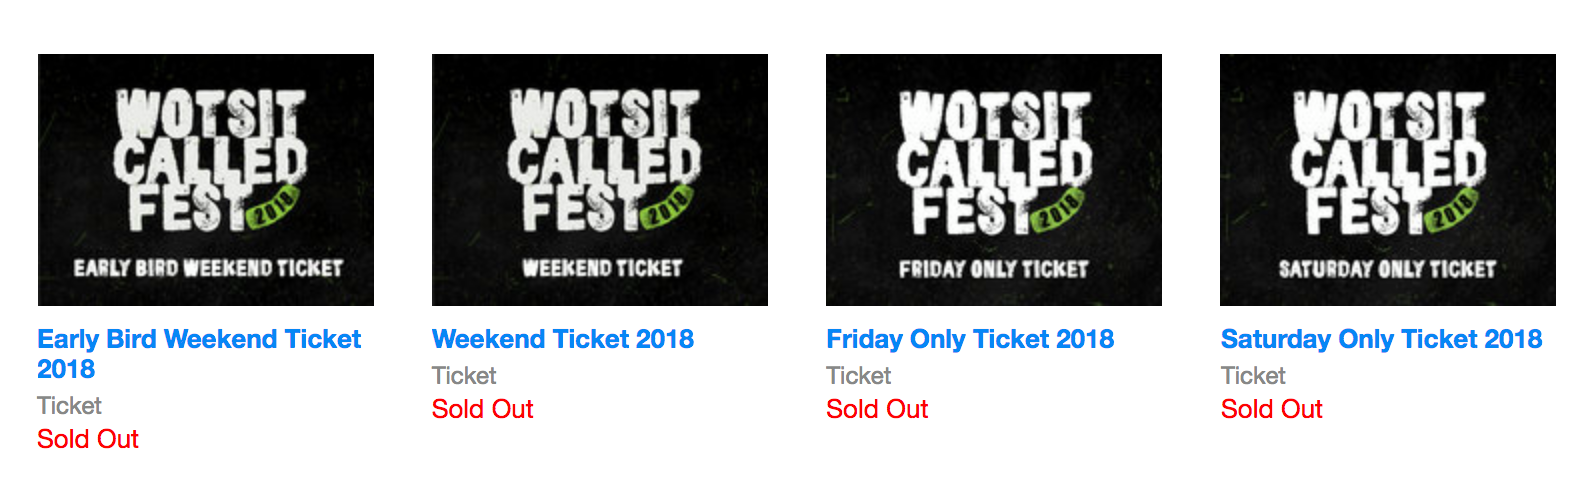 Wotsit Called Fest news: Wotsit Called Fest 2018 has completely sold out!